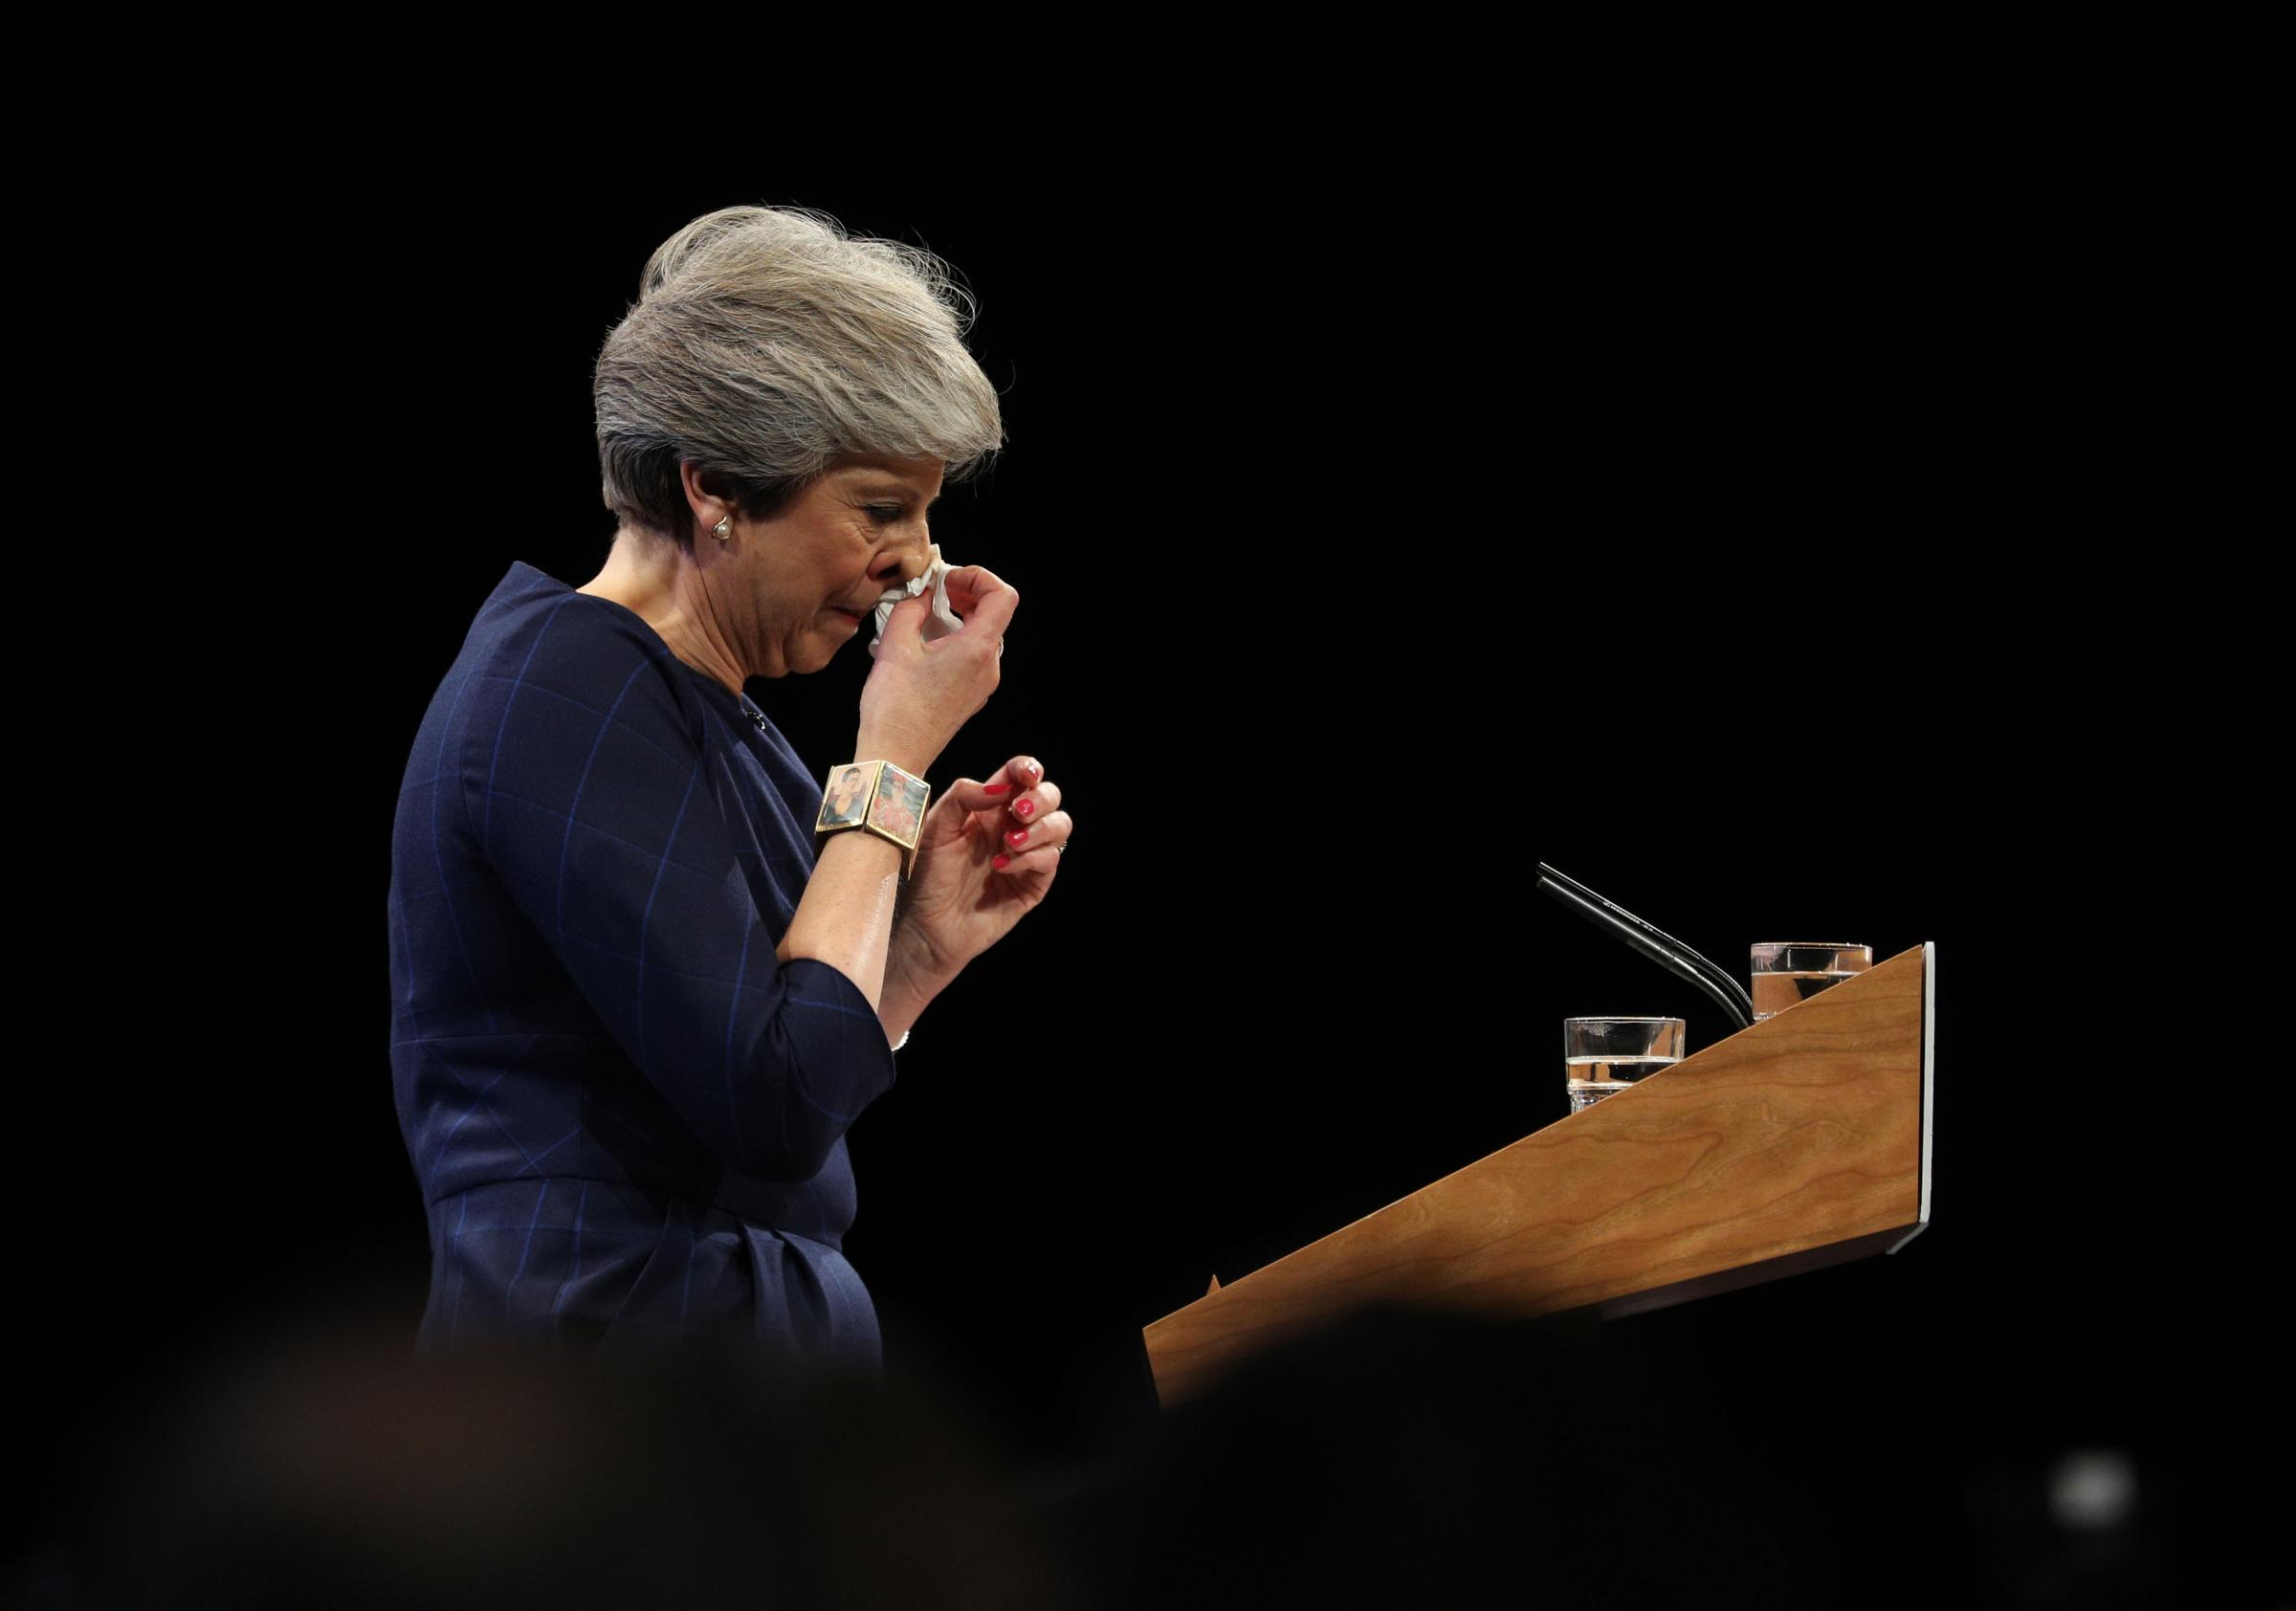 Prime Minister Theresa May wipes her nose as she delivers her keynote speech at the Conservative Party Conference. Picture: Owen Humphreys / PA Wire